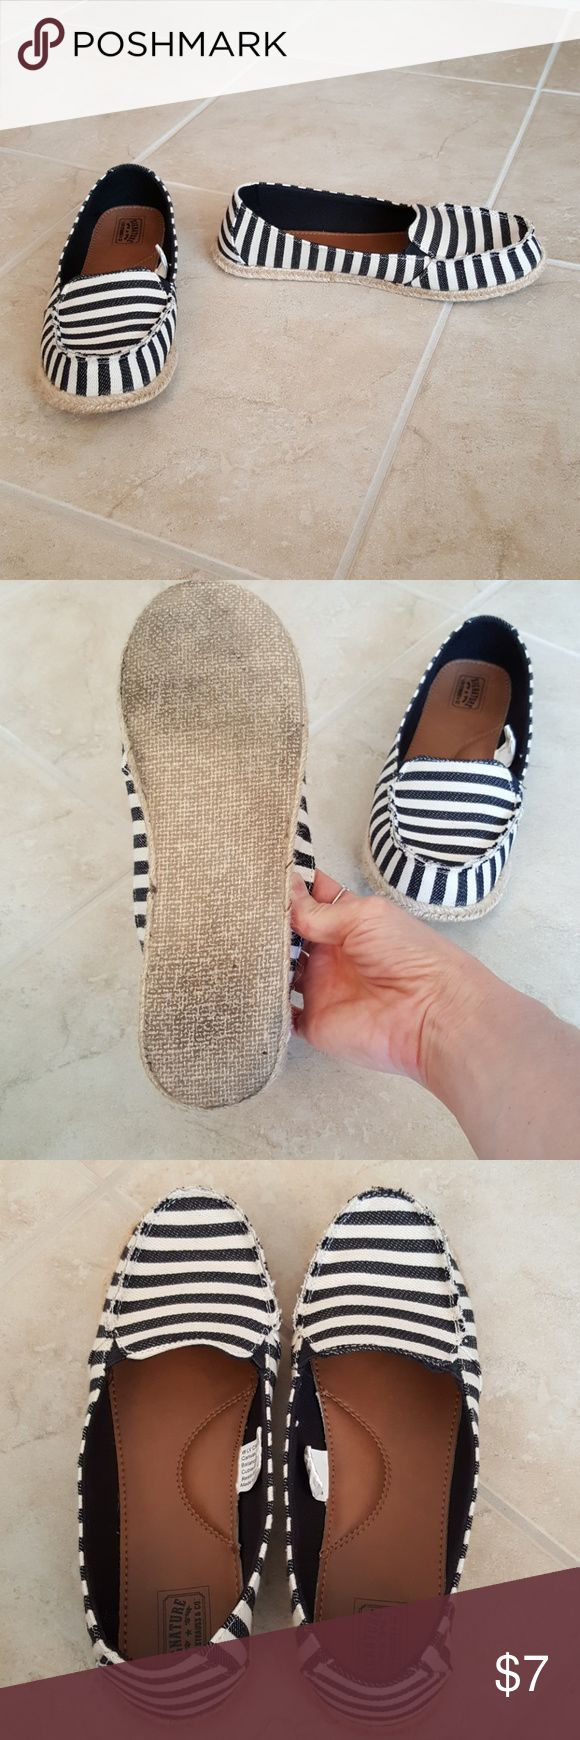 Levi Signature * Black / ivory slip on espadrilles Extremely comfy slip ons. Beyond cute stripes. Gently worn. Perfect for shorts or skirt. Great casual style. Canvas uppers. Size 8. Levi Strauss Signature Shoes Espadrilles